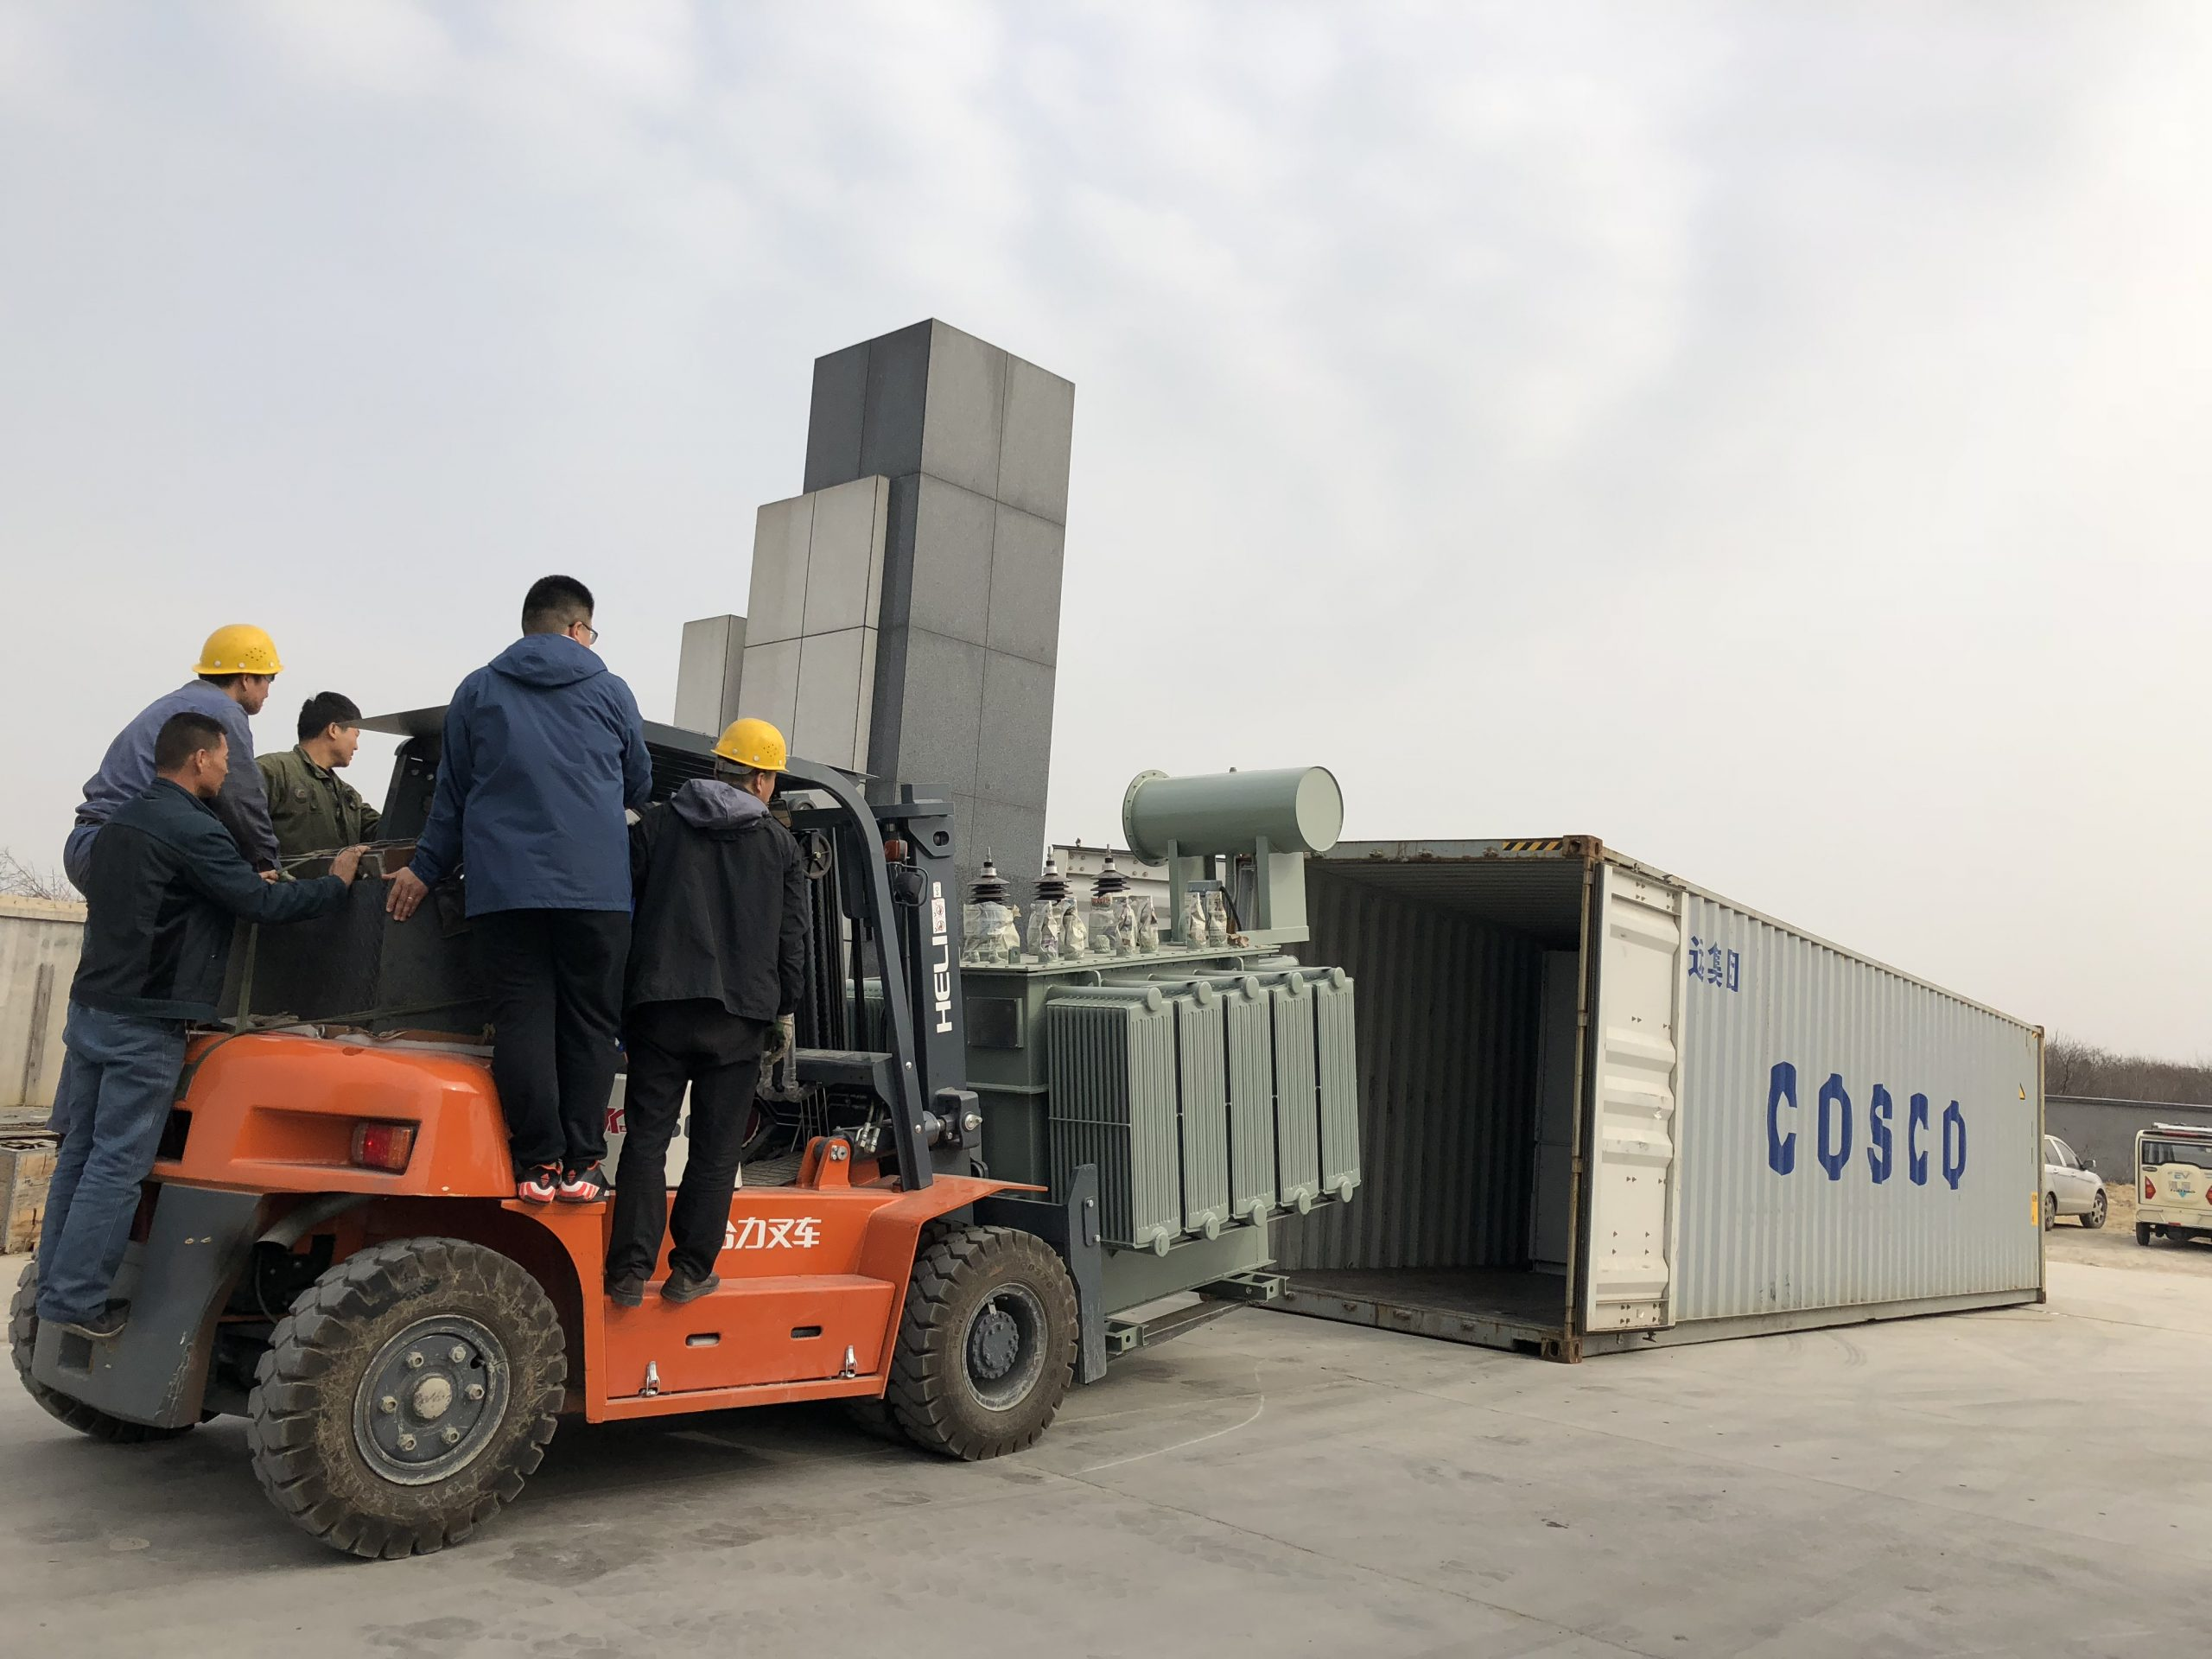 1500kva transformer loaded and shipped from huaxin electric melting furnace company